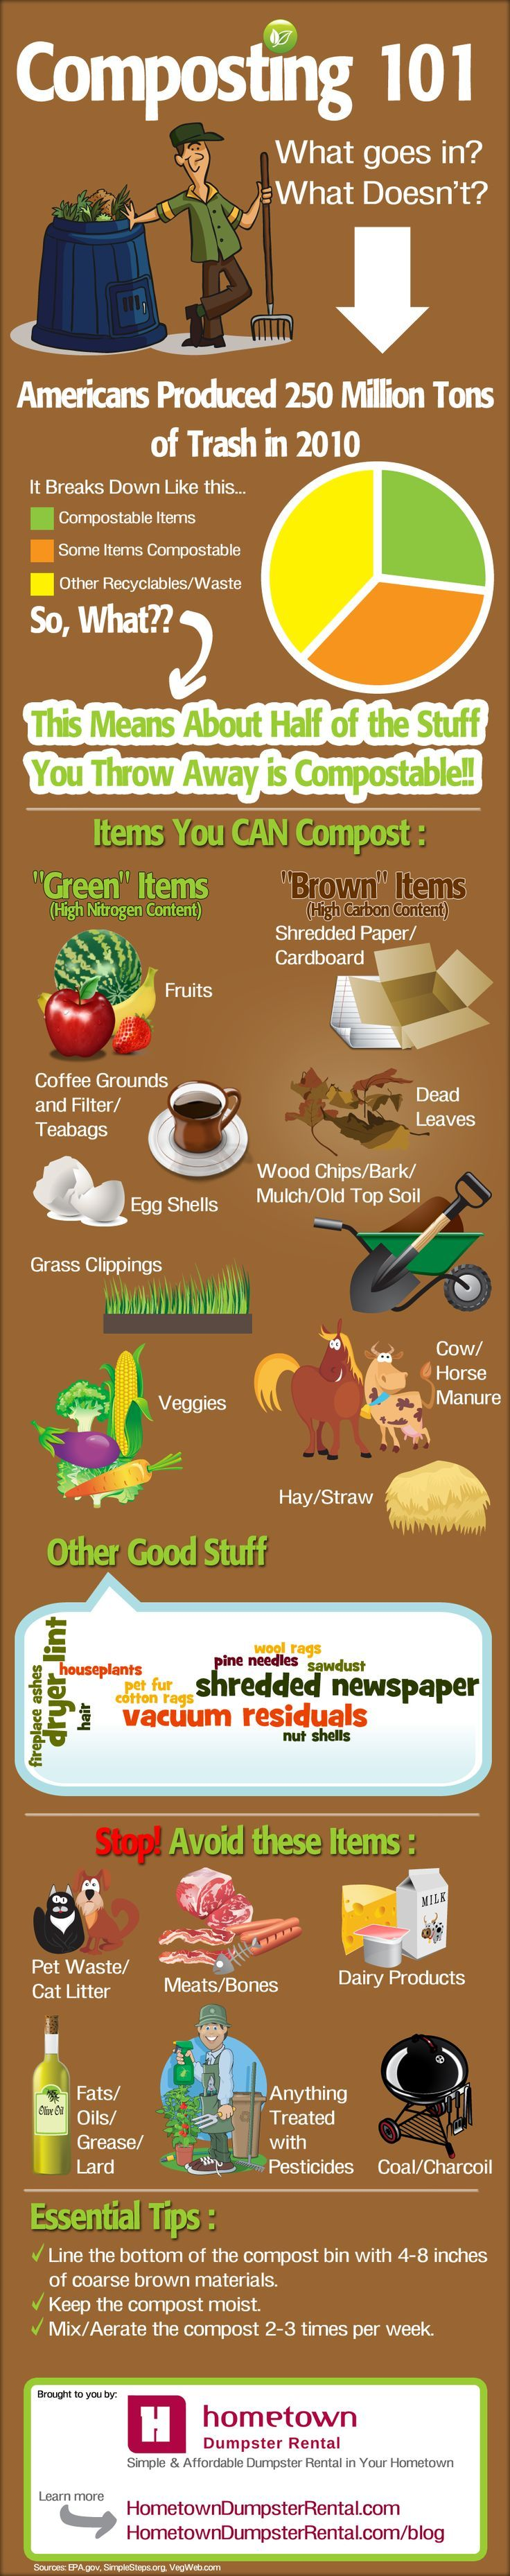 Composting 101. Reduce your waste this year, go green, and start composting this year.